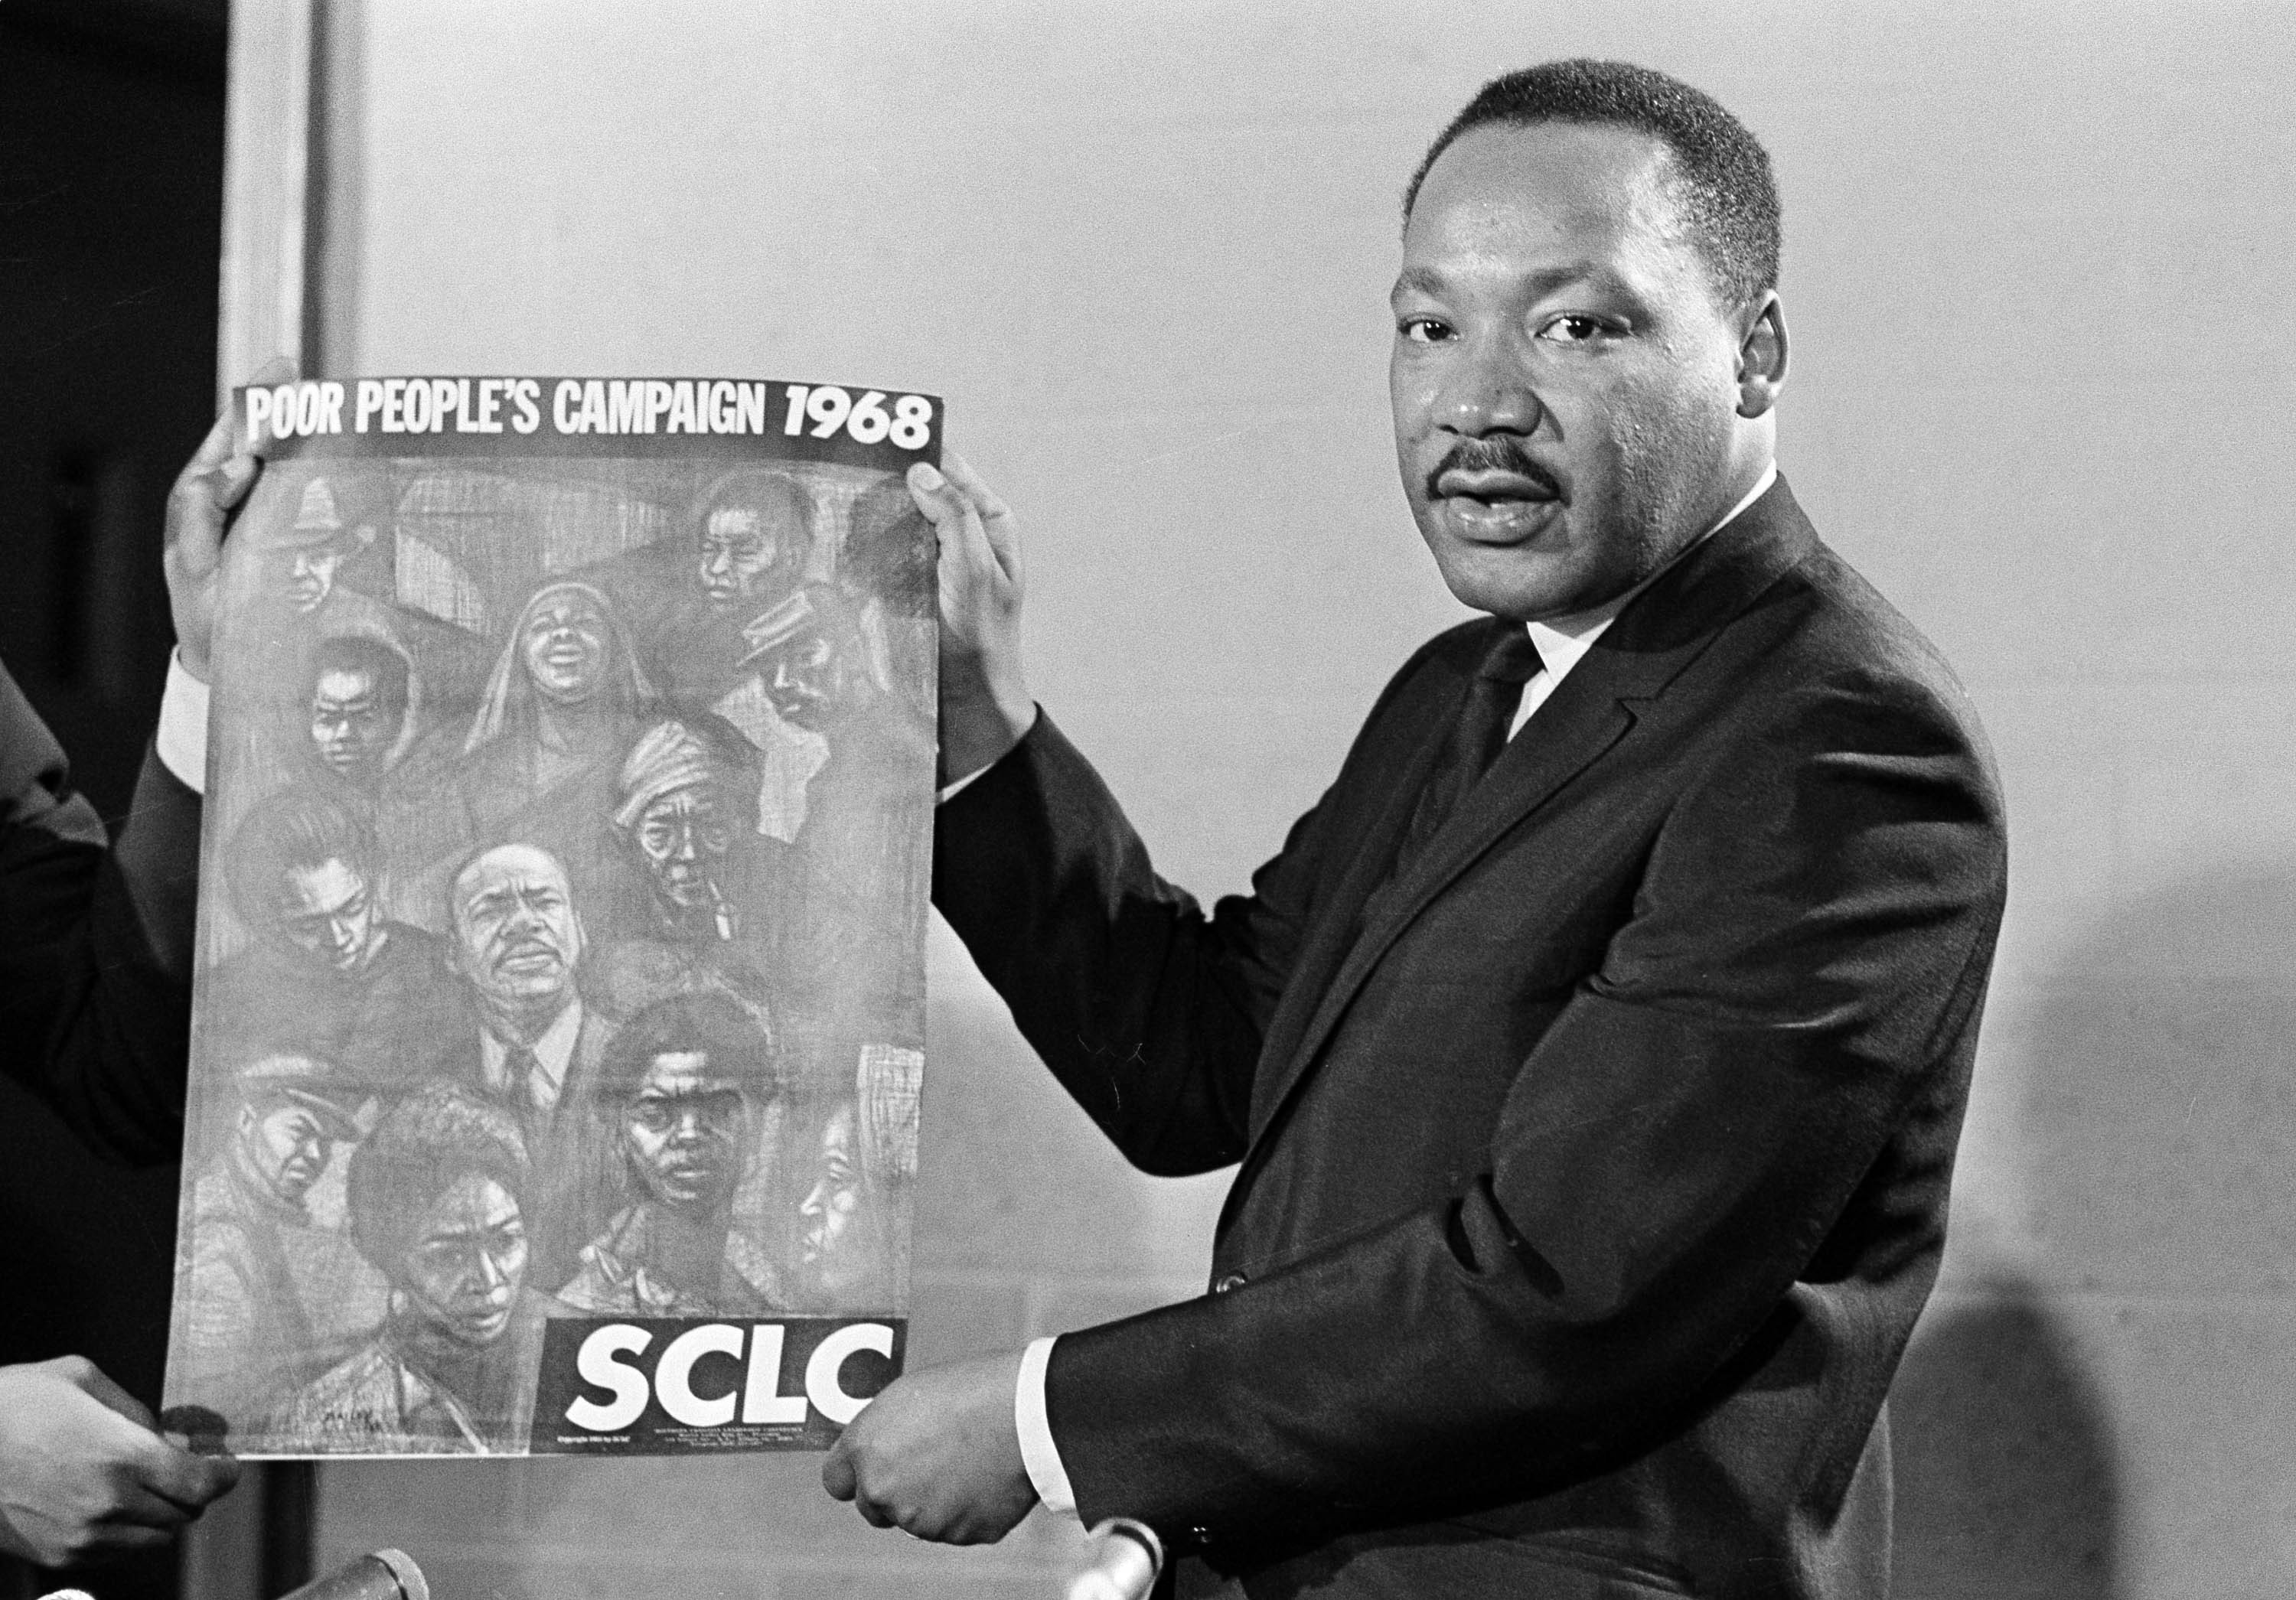 As One Of His Final Acts Martin Luther King Fought For A